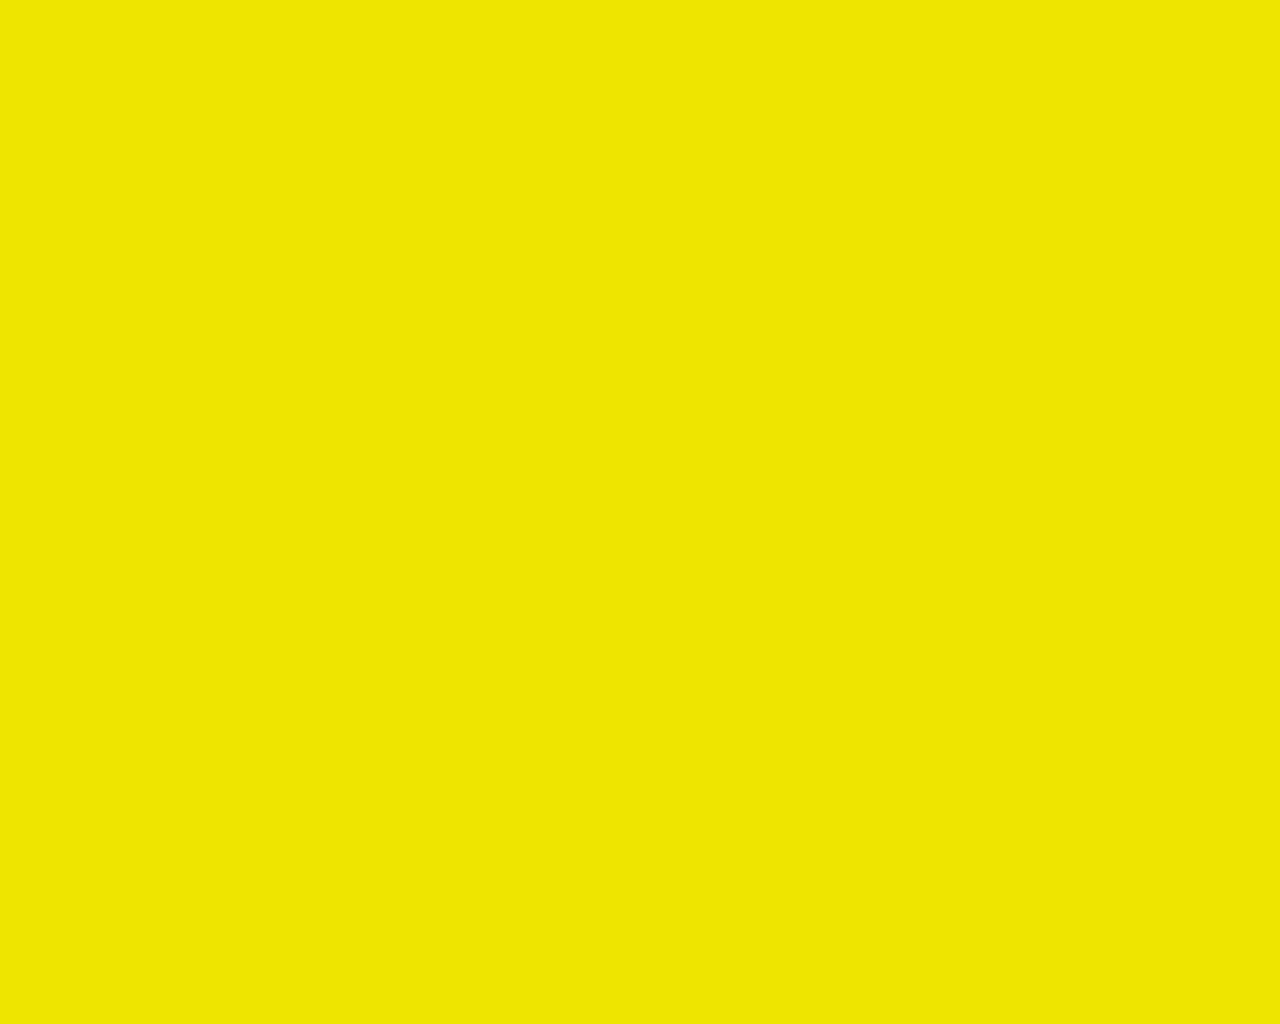 1280x1024 Titanium Yellow Solid Color Background